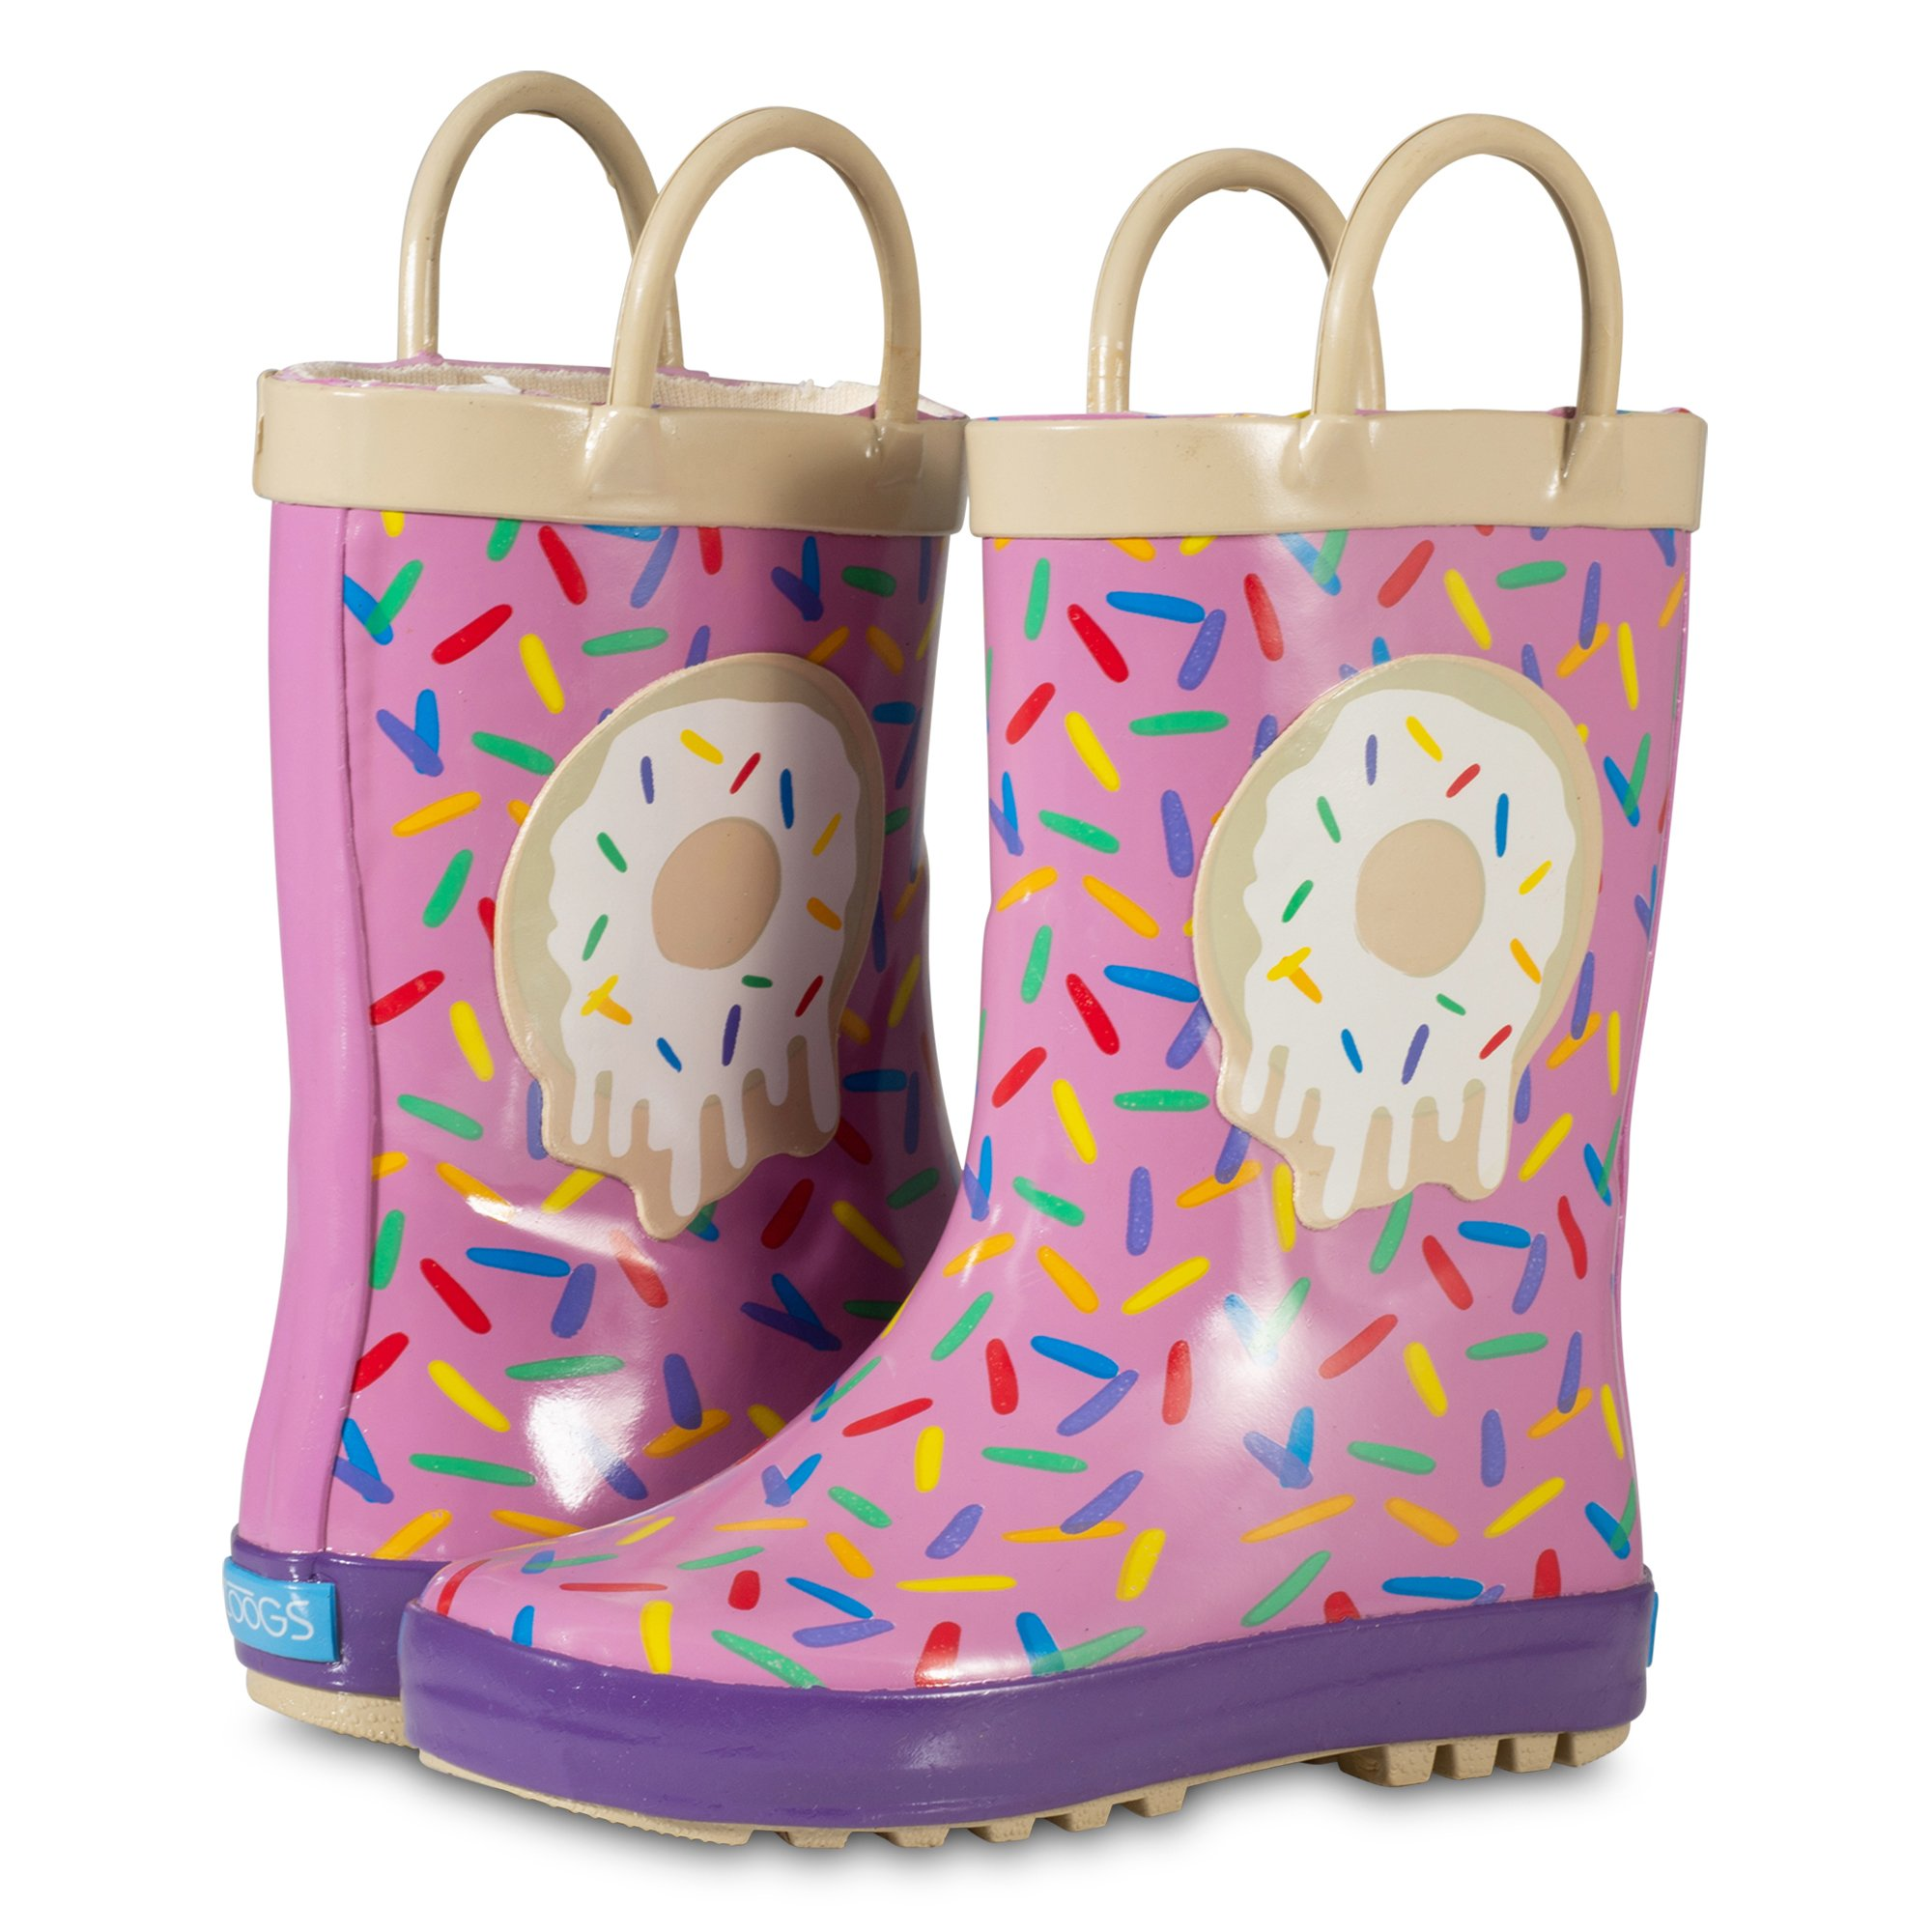 ZOOGS Children's Rubber Rain Boots, Little Kids & Toddler, Boys & Girls Patterns by ZOOGS (Image #6)